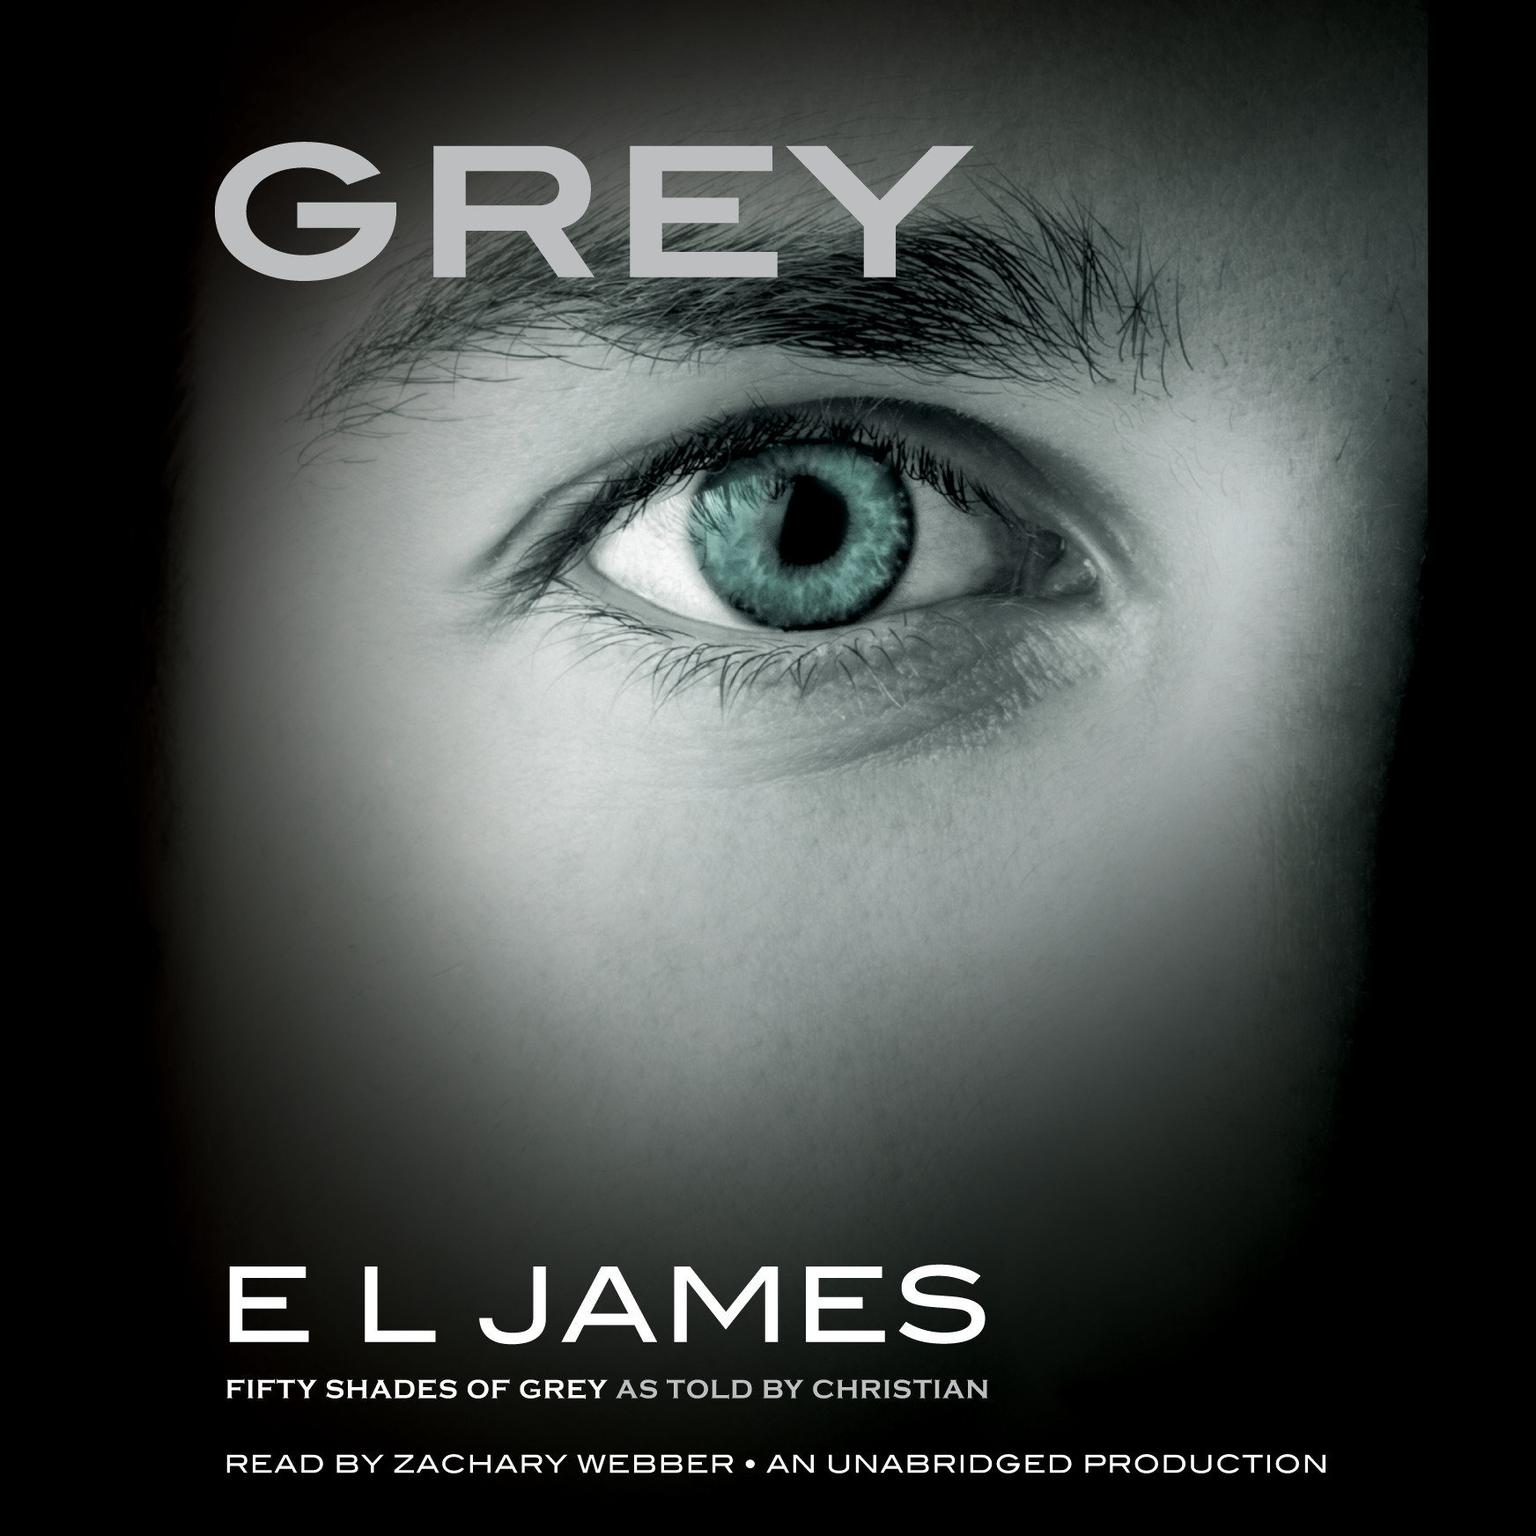 hear grey audiobook by e l james for just  extended audio sample grey fifty shades of grey as told by christian audiobook by e l james